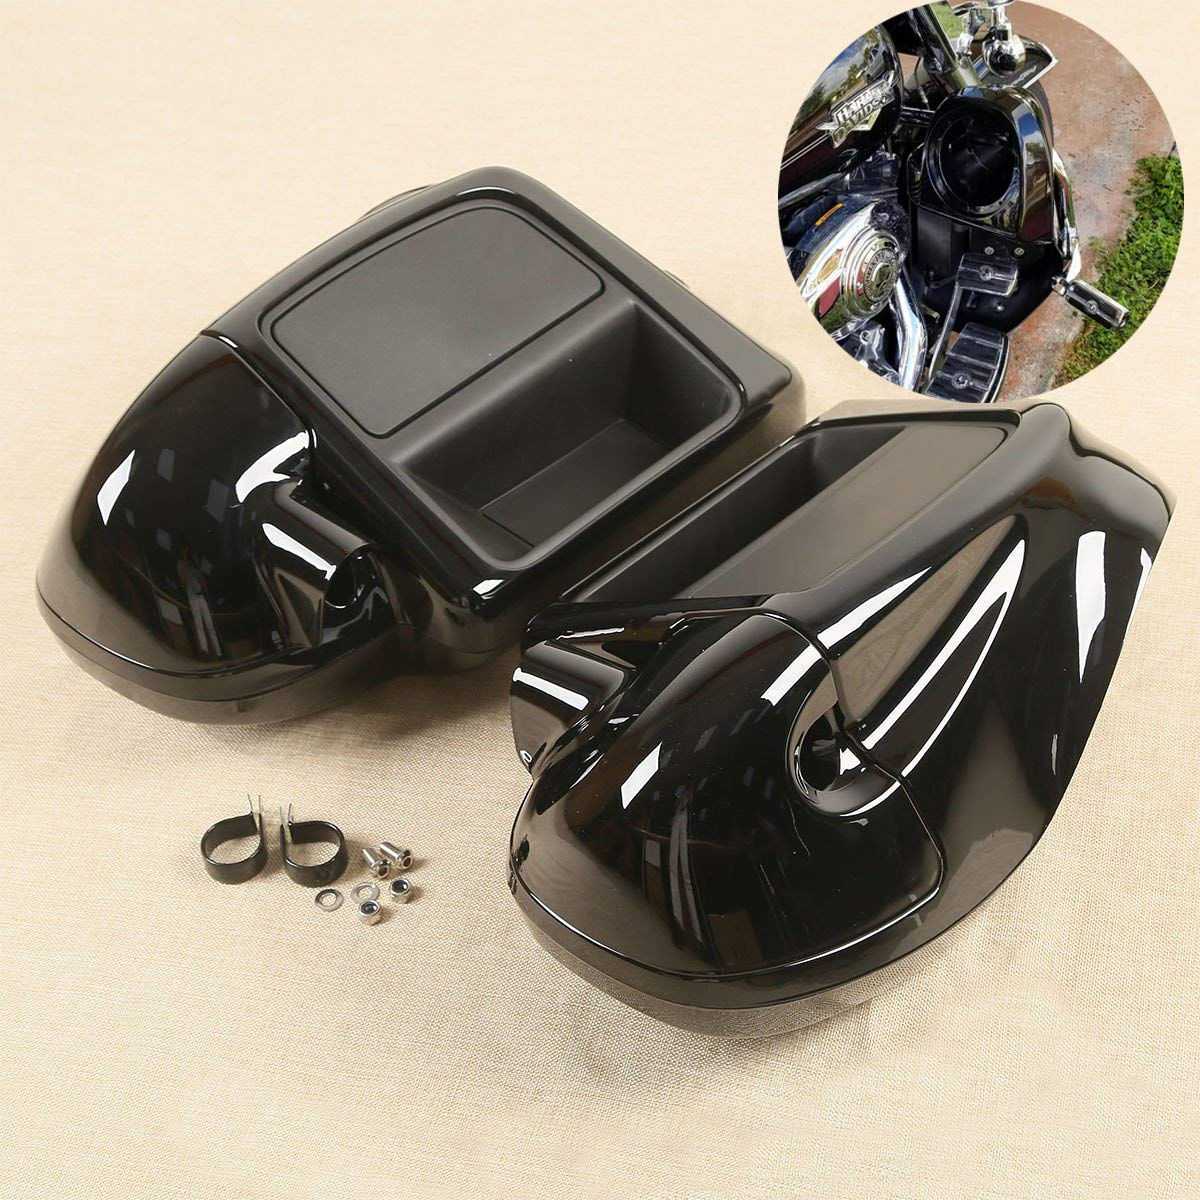 XFMT Motorcycles Lower Vented Fairing W/ 6.5'' Speaker Box Pod Compatible with Harley Touring Road King, Street Glide, org equipment on FLHTCU 2014-2019